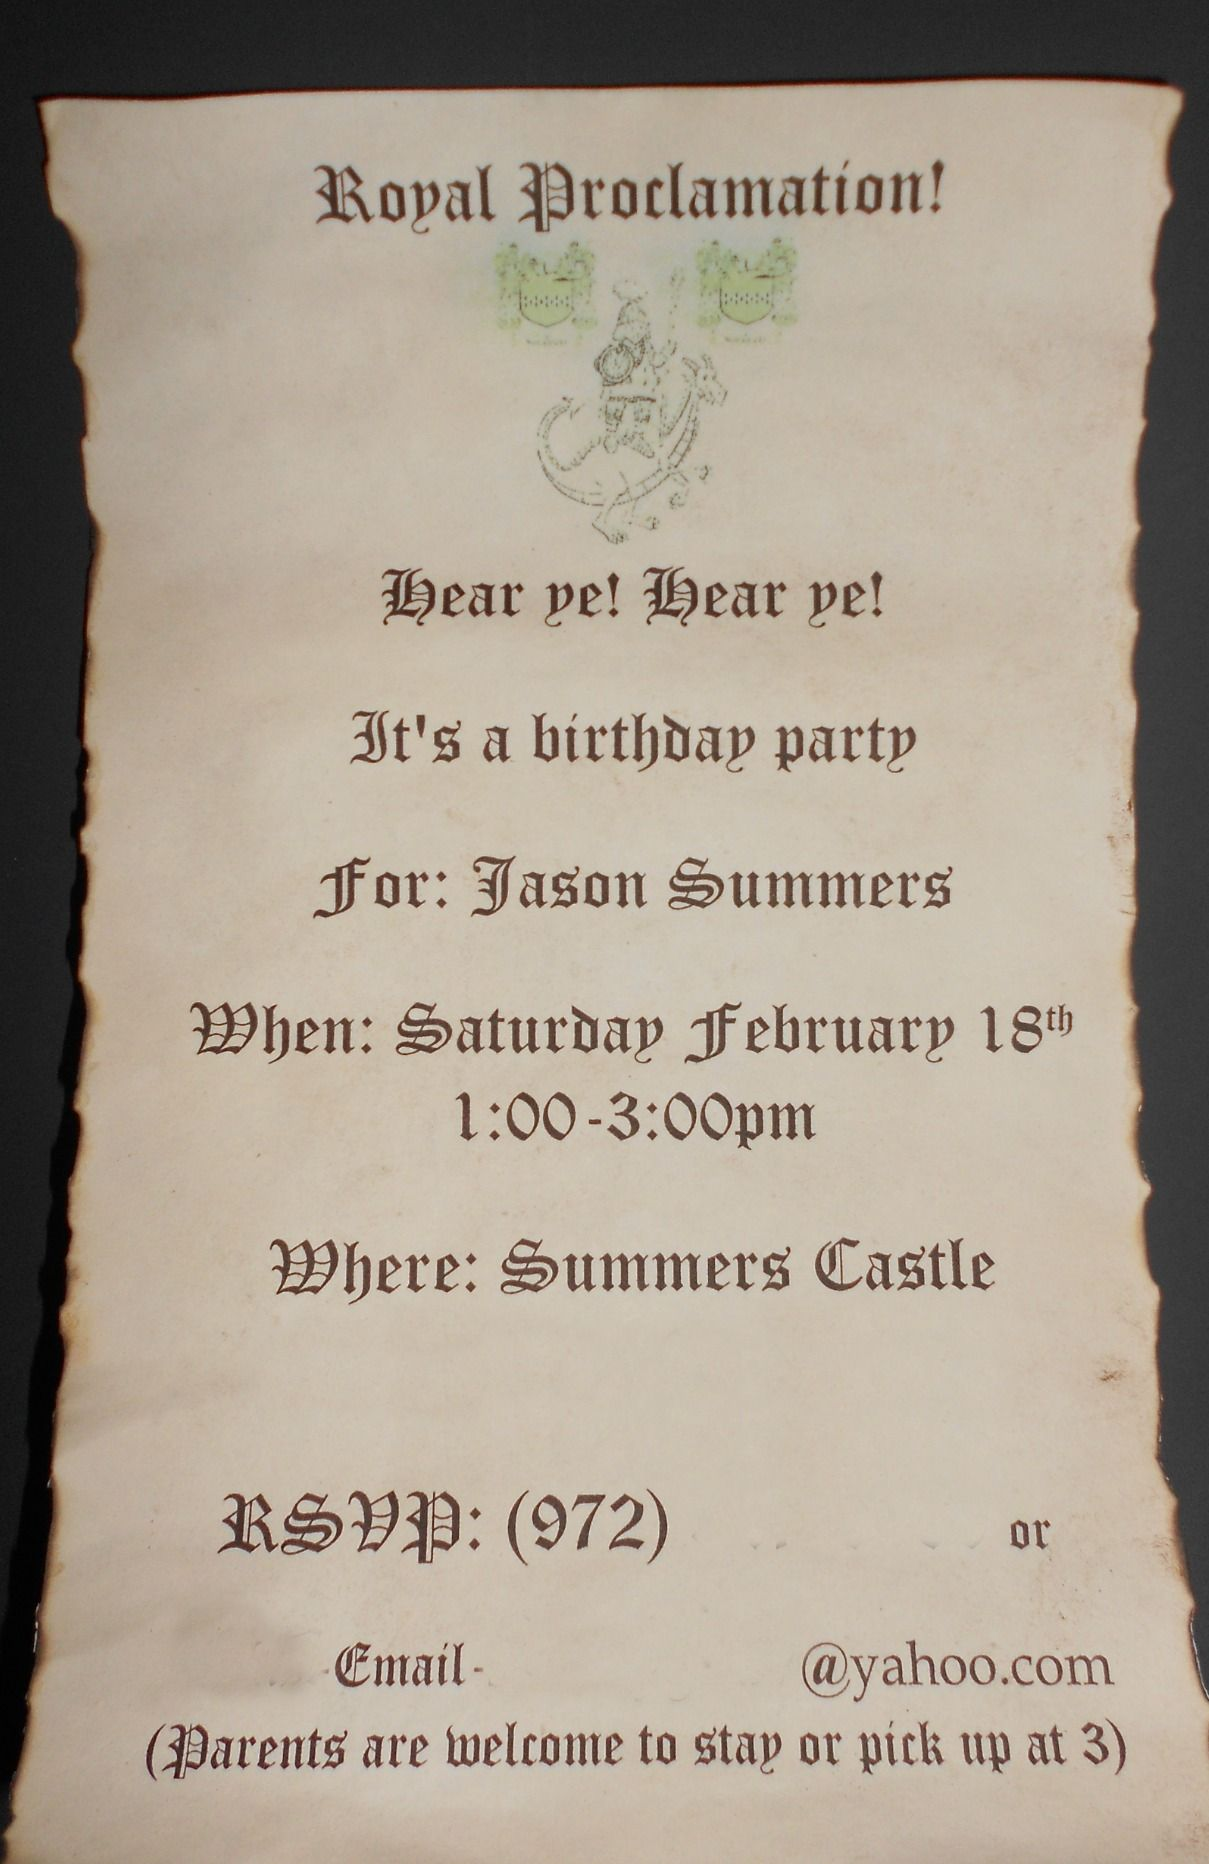 wording for party invitations uk%0A Medieval Times Birthday Invitation  Printed Invitation in Old English Font  and Soaked it in coffee